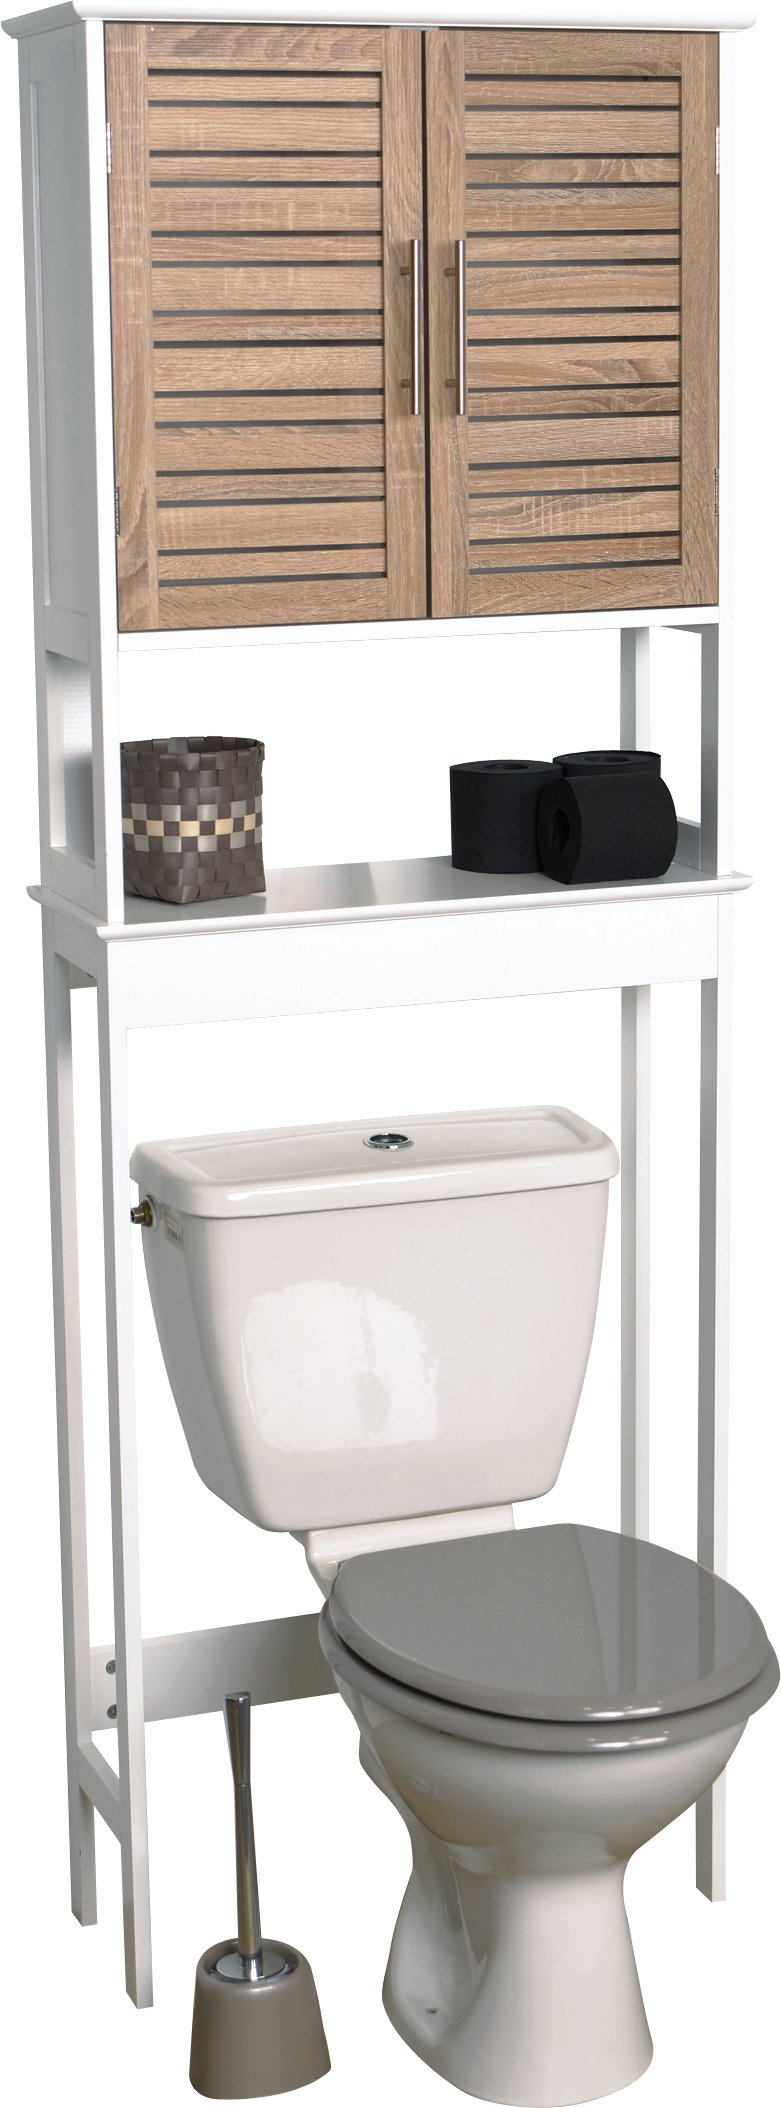 EVIDECO Stockholm 24.8'' x 70.5'' Free Standing Over the Toilet